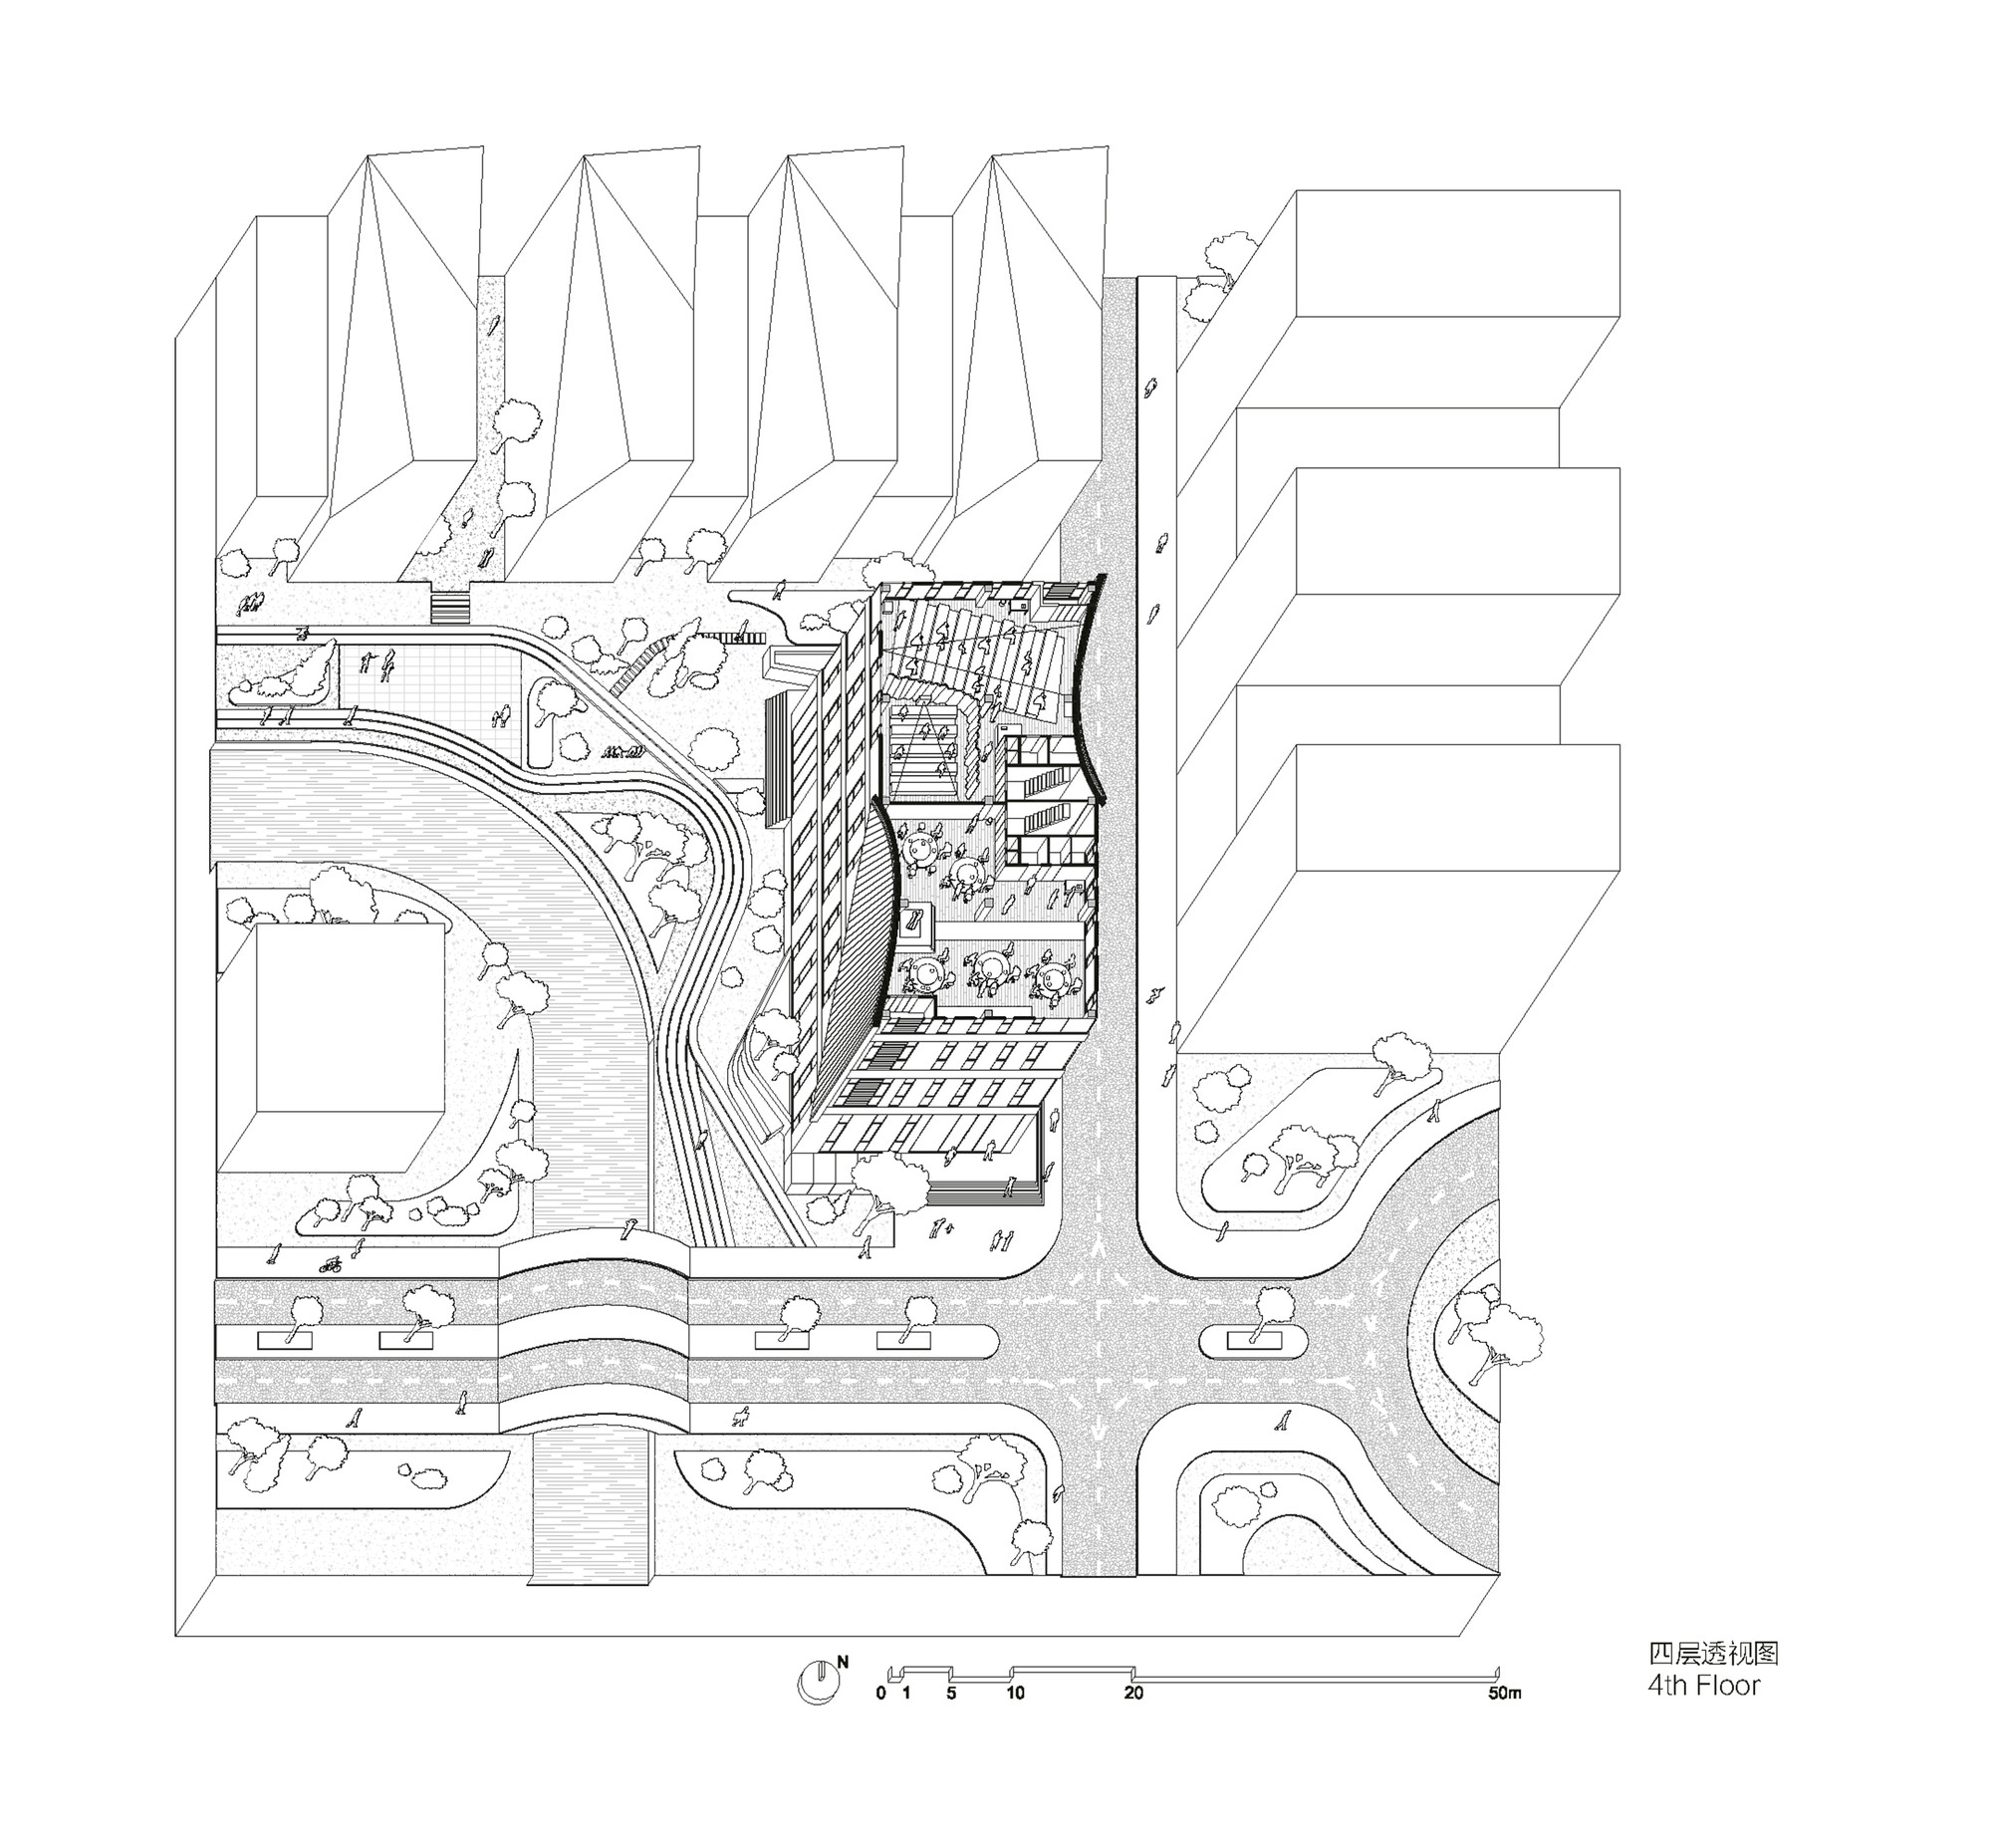 Gallery Of Songjiang Art Campus Archi Union Architects 24 T800 Wiring Diagram Campusfourth Floor Plan